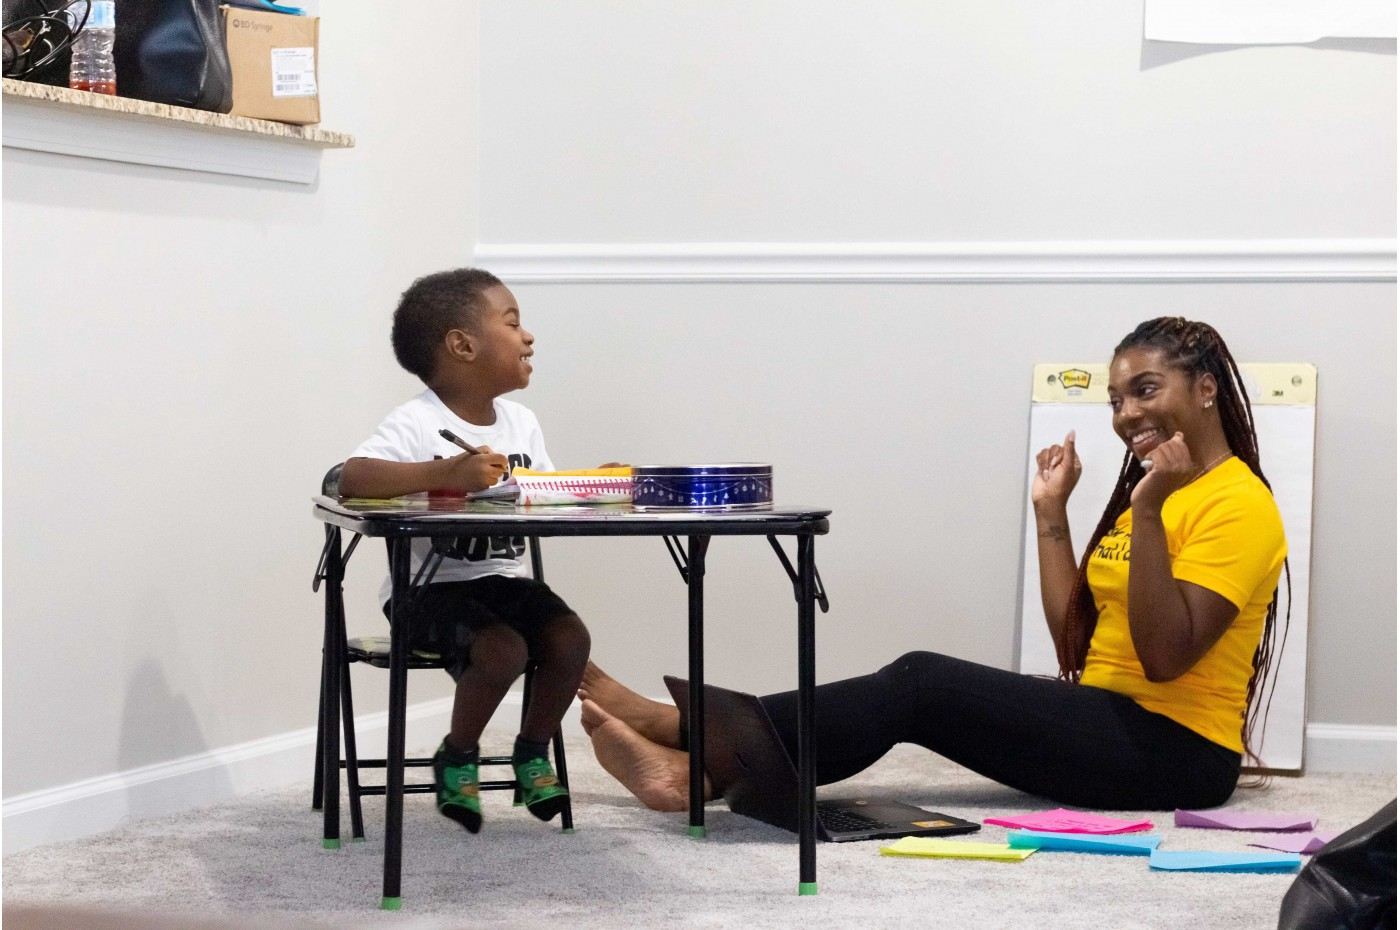 A woman sitting on the floor, encouraging a young child who sits at a desk near her.